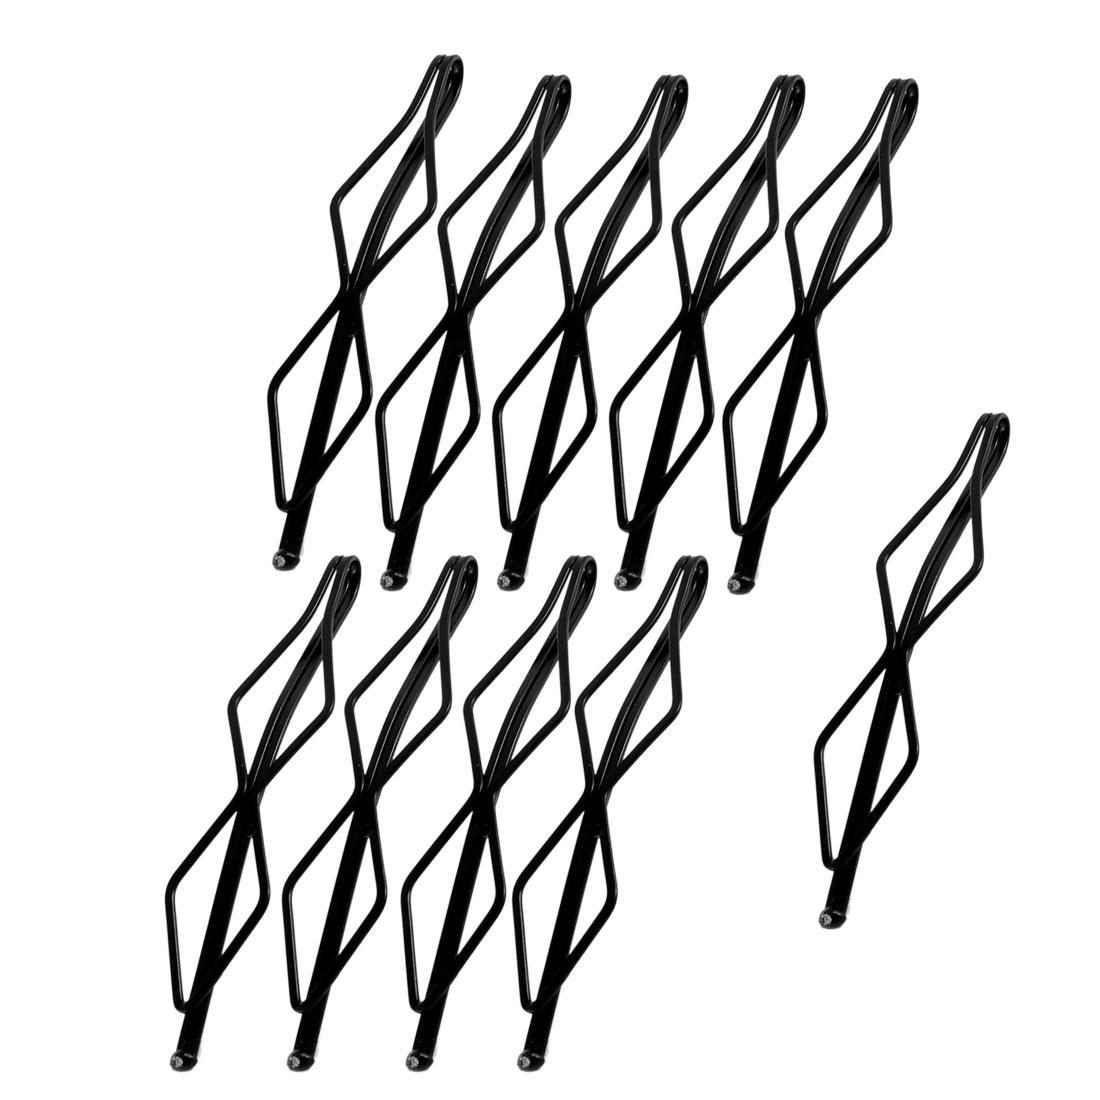 10 Pcs Hairdressing Wave Style Double Prong Hair Clip Bob Pin Black for Lady